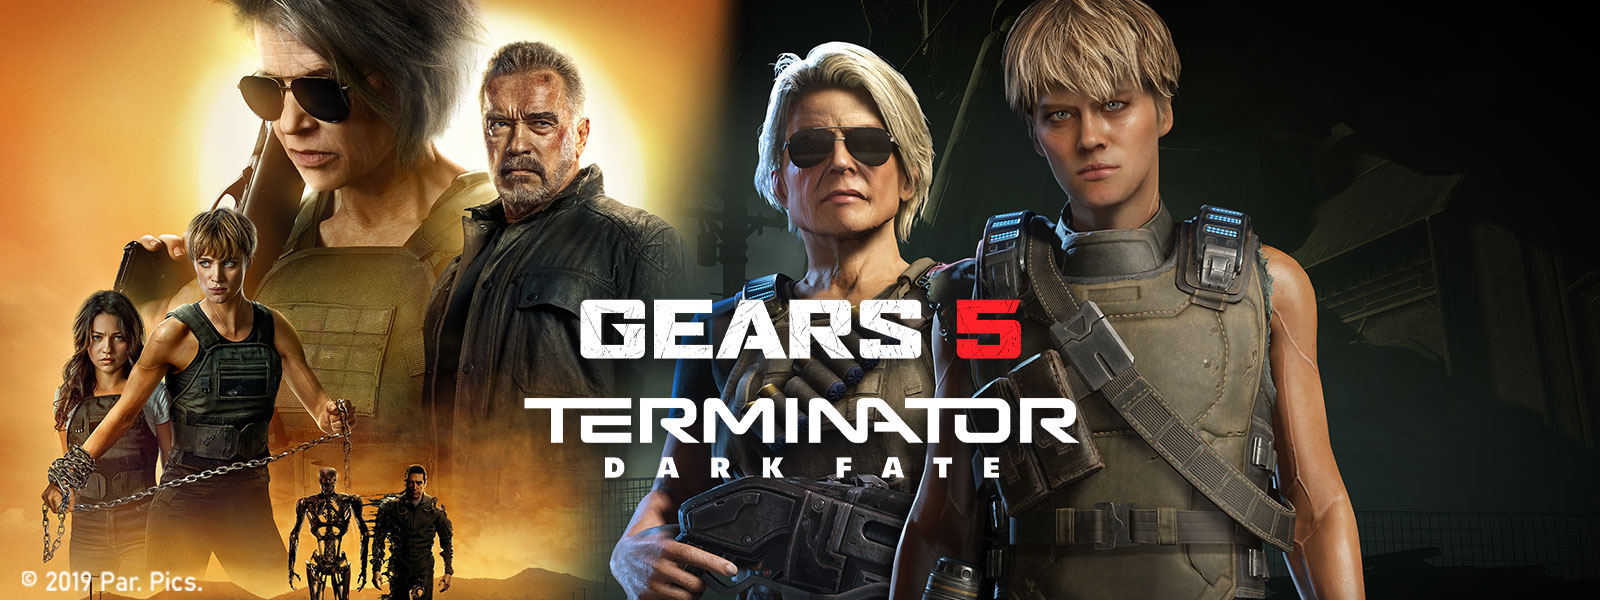 Gears 5, Terminator Dark Fate movie poster with front view of in game characters Grace and the Rev-9 Terminator